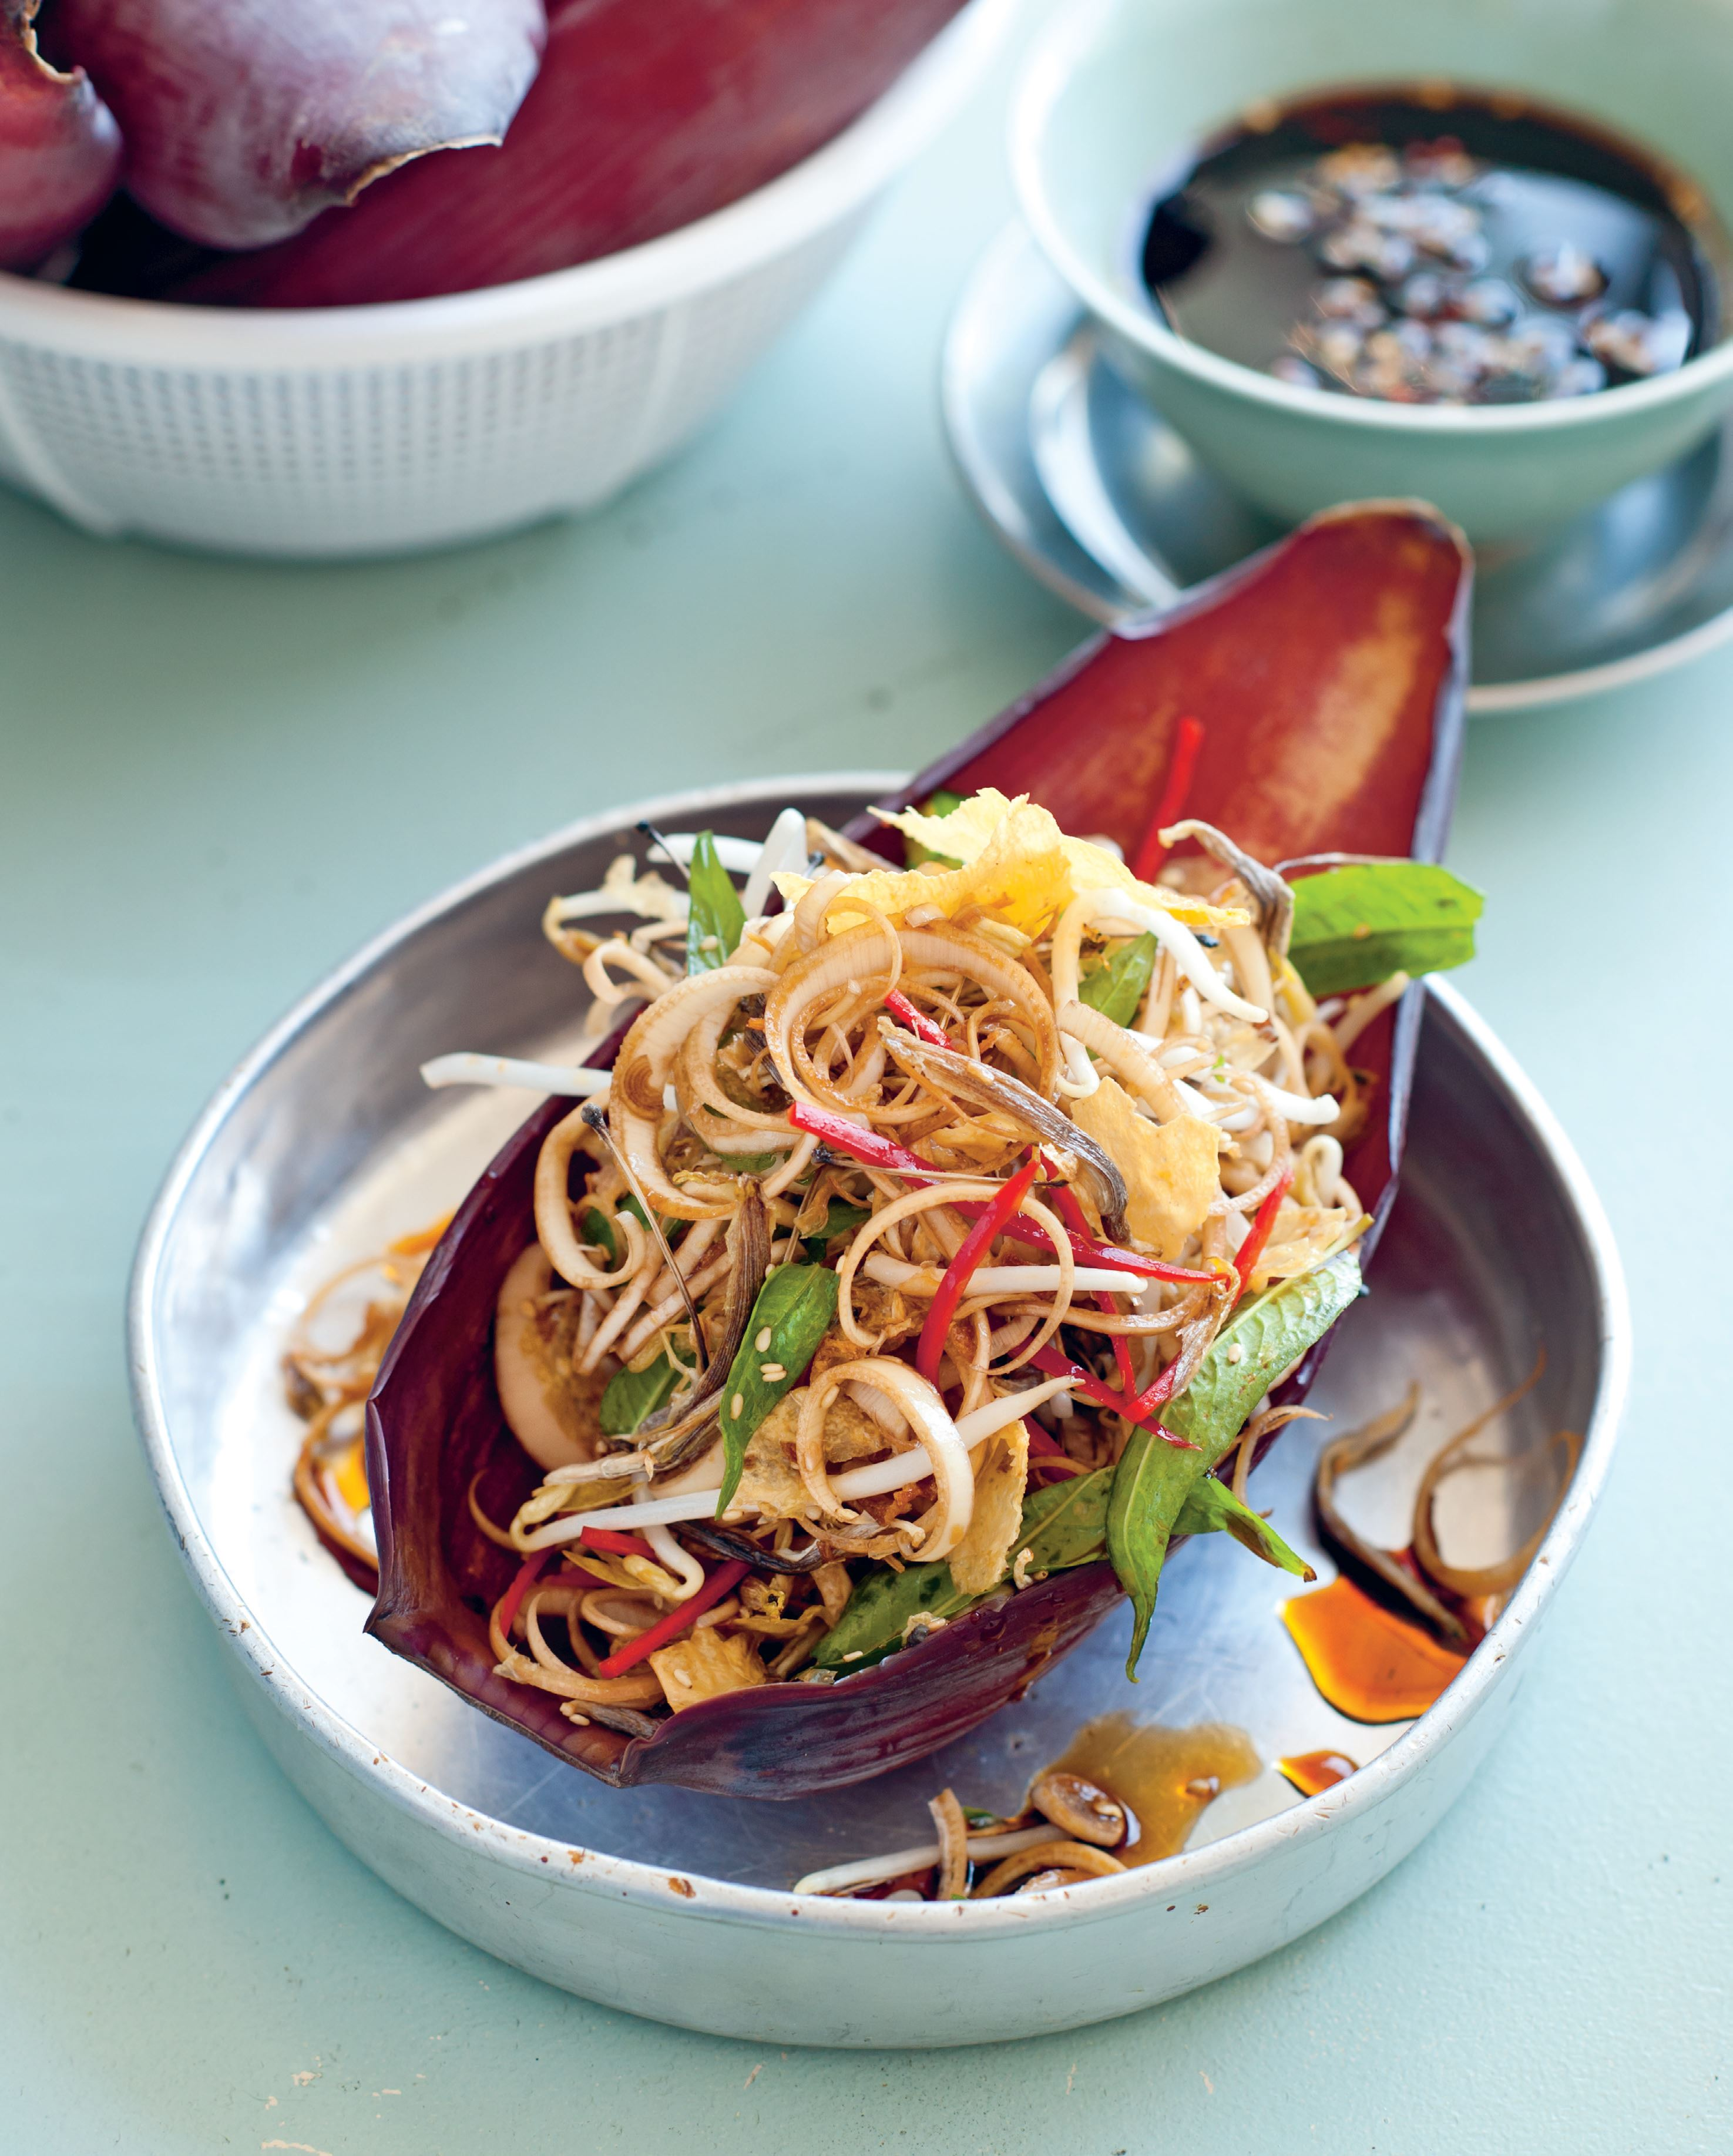 Banana blossom salad with tofu skin